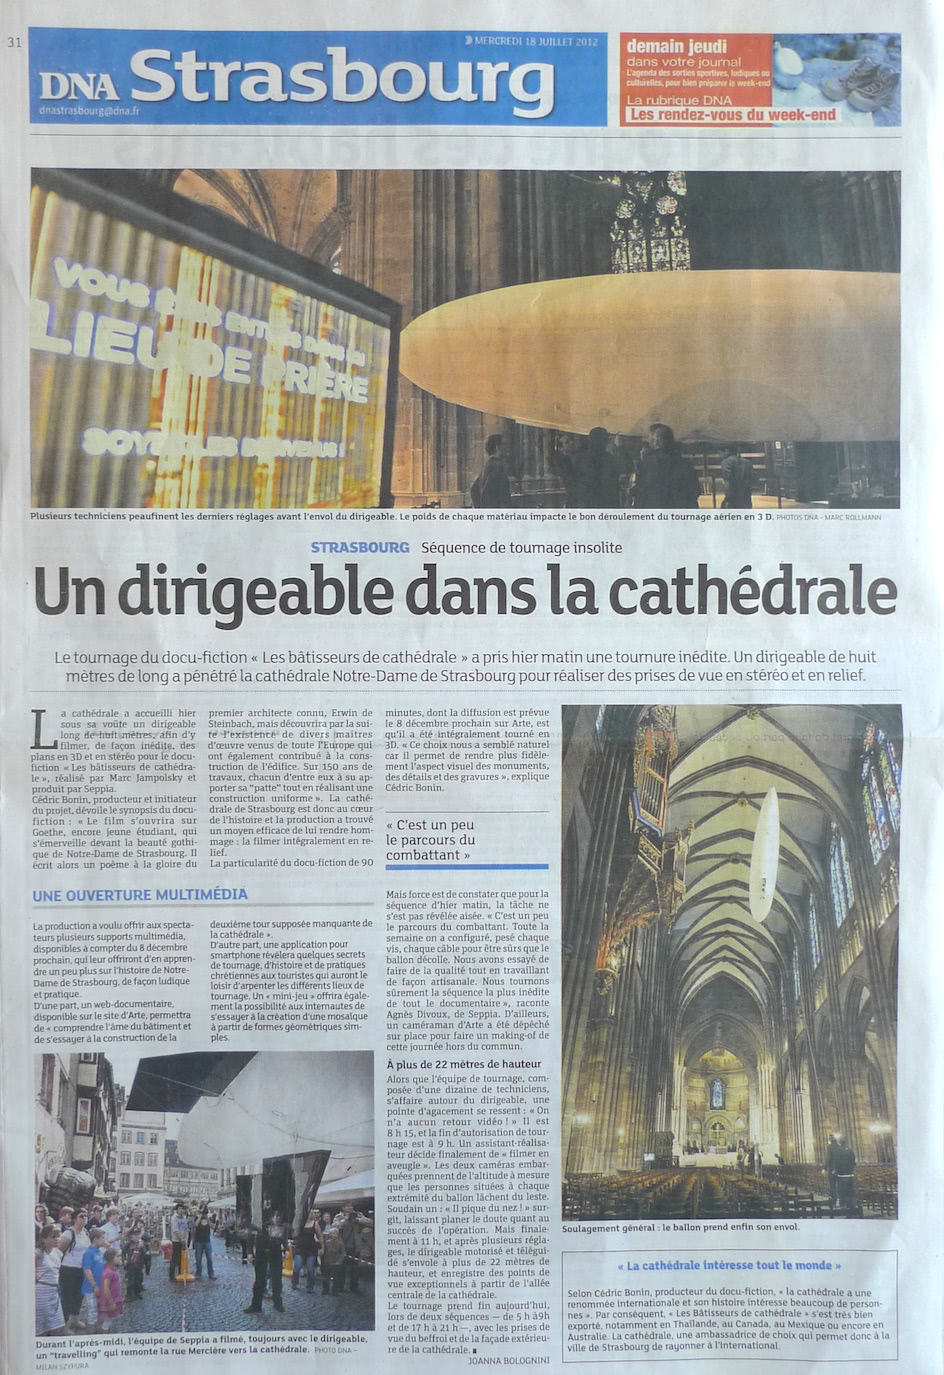 Arte Journal Weekend 2012 07 18 Dna Dirigeable Cathedrale Strasbourg Seppia